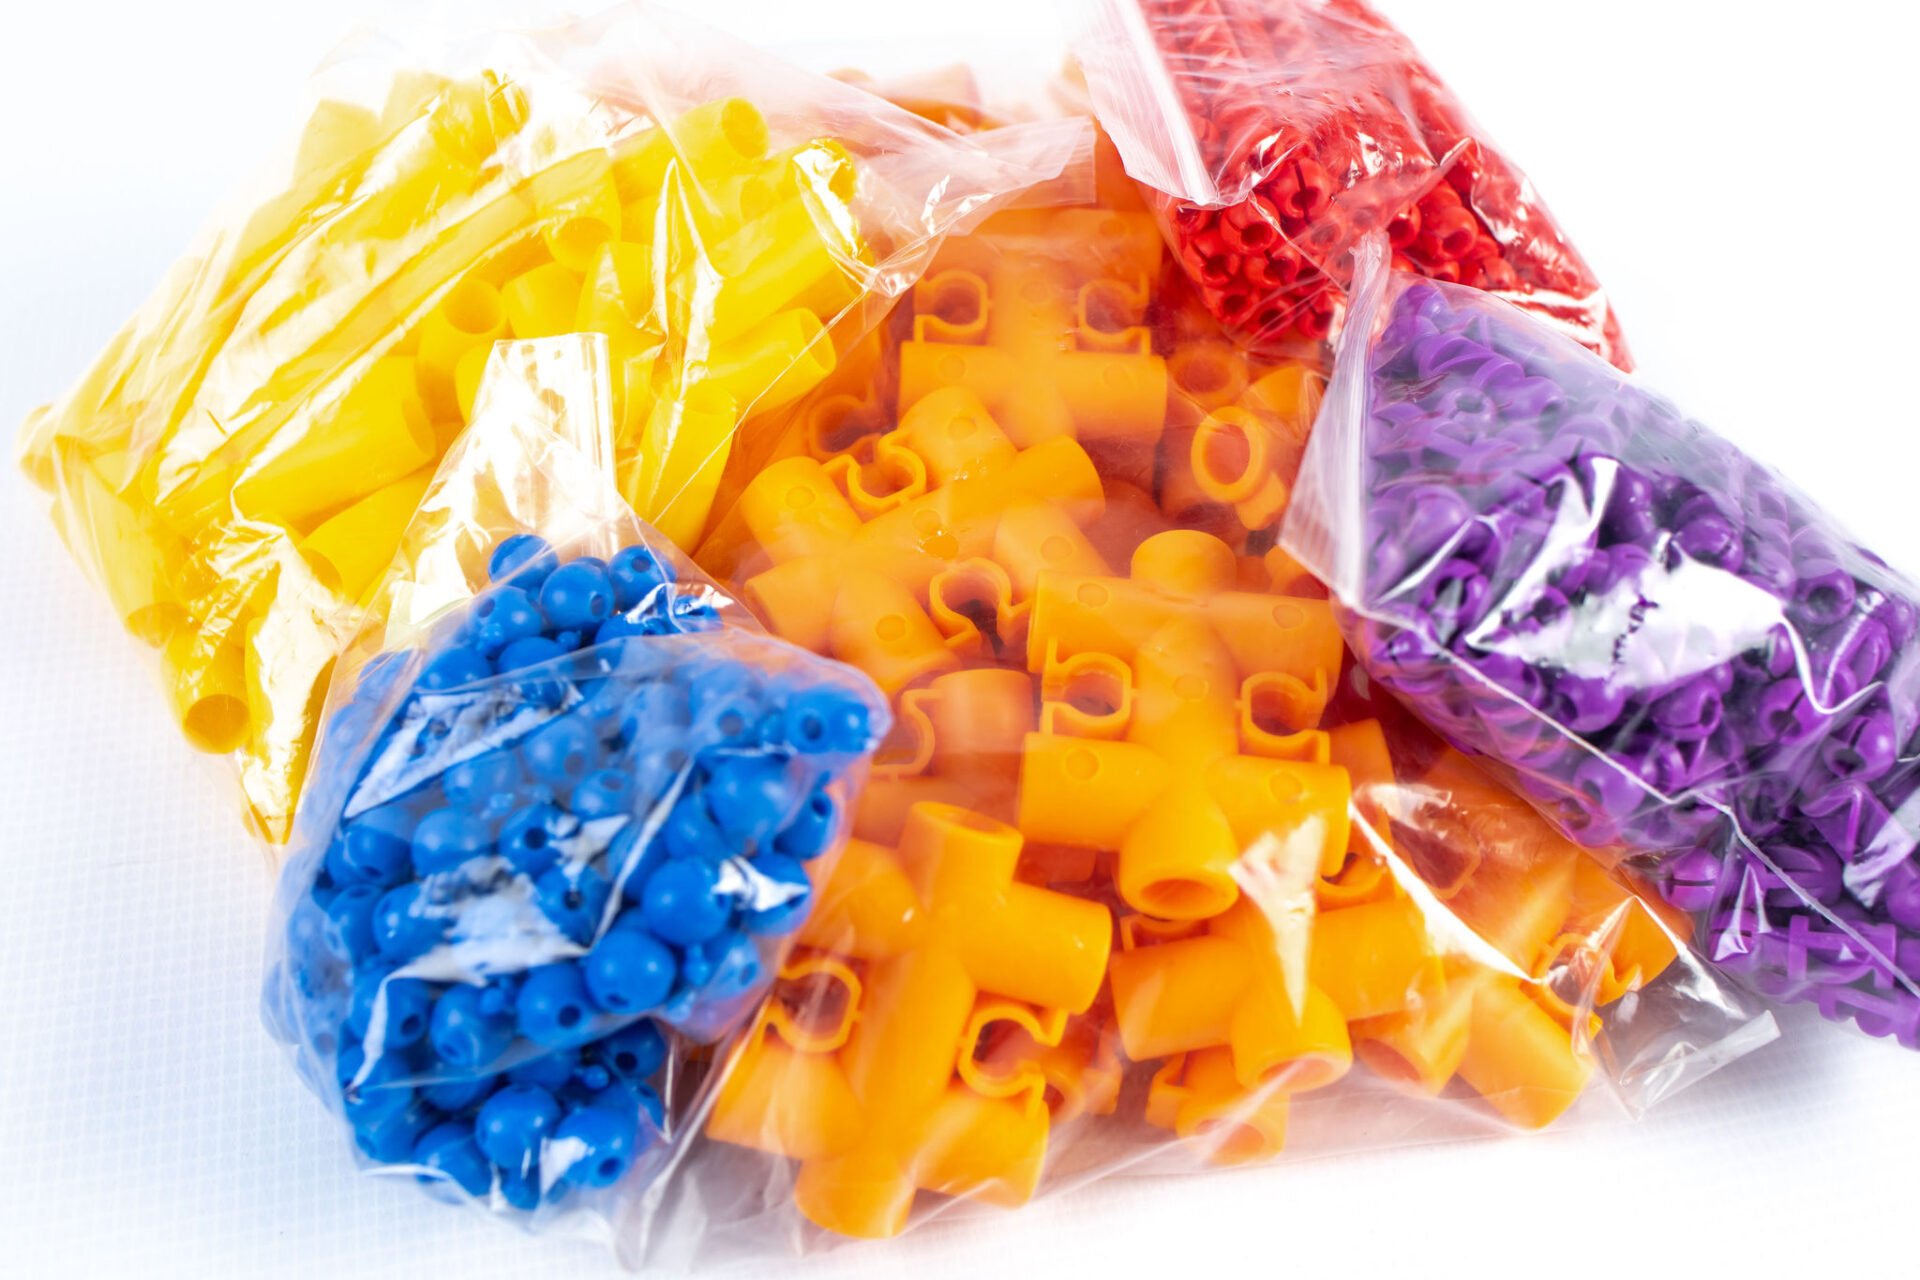 close up of colorful plastic pieces in clear plastic bags